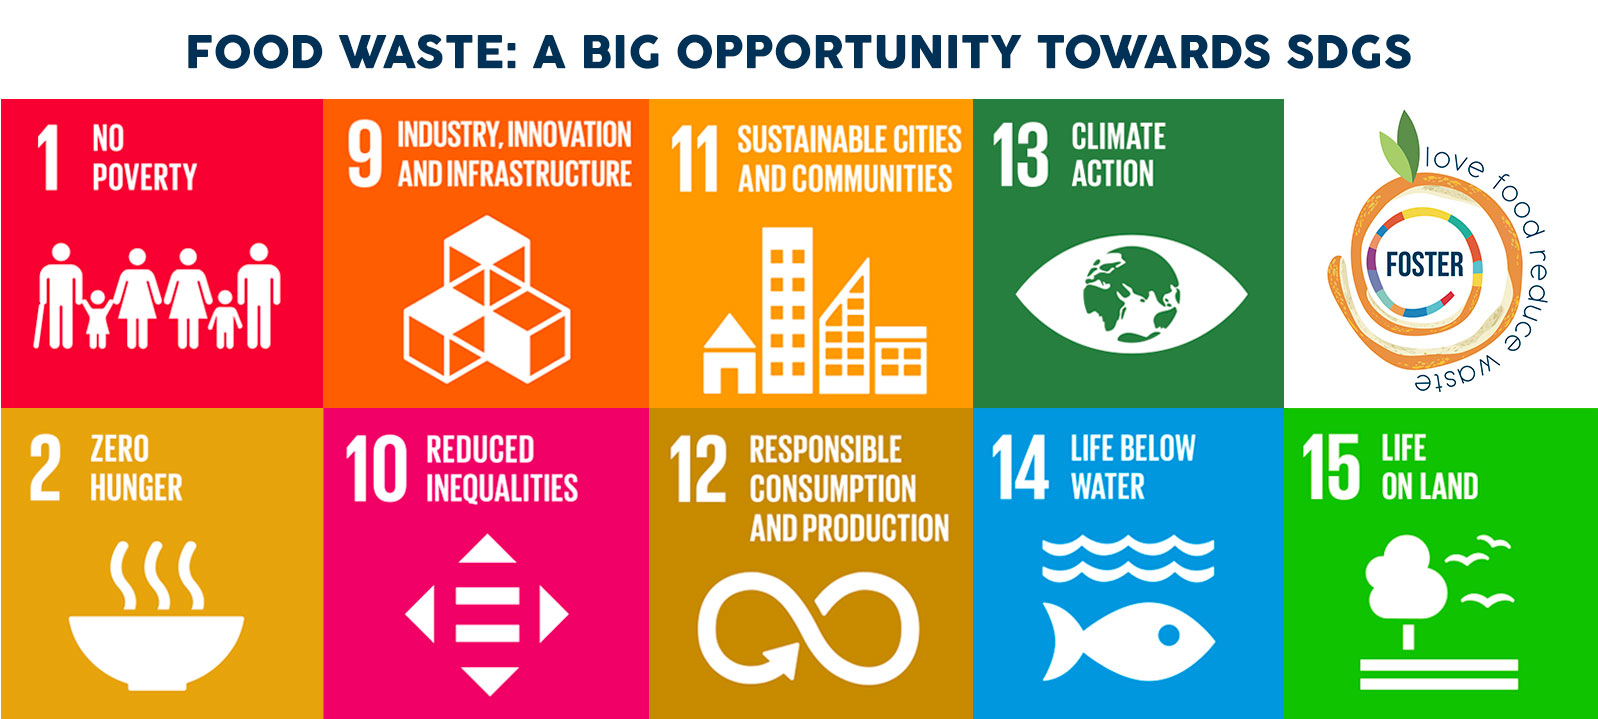 SDGs, Foster, Life, EuropeanCommission, VET, FoodWaste, Training, Sustainability, Gastronomic, Food waste, restaurant industry, circular economy